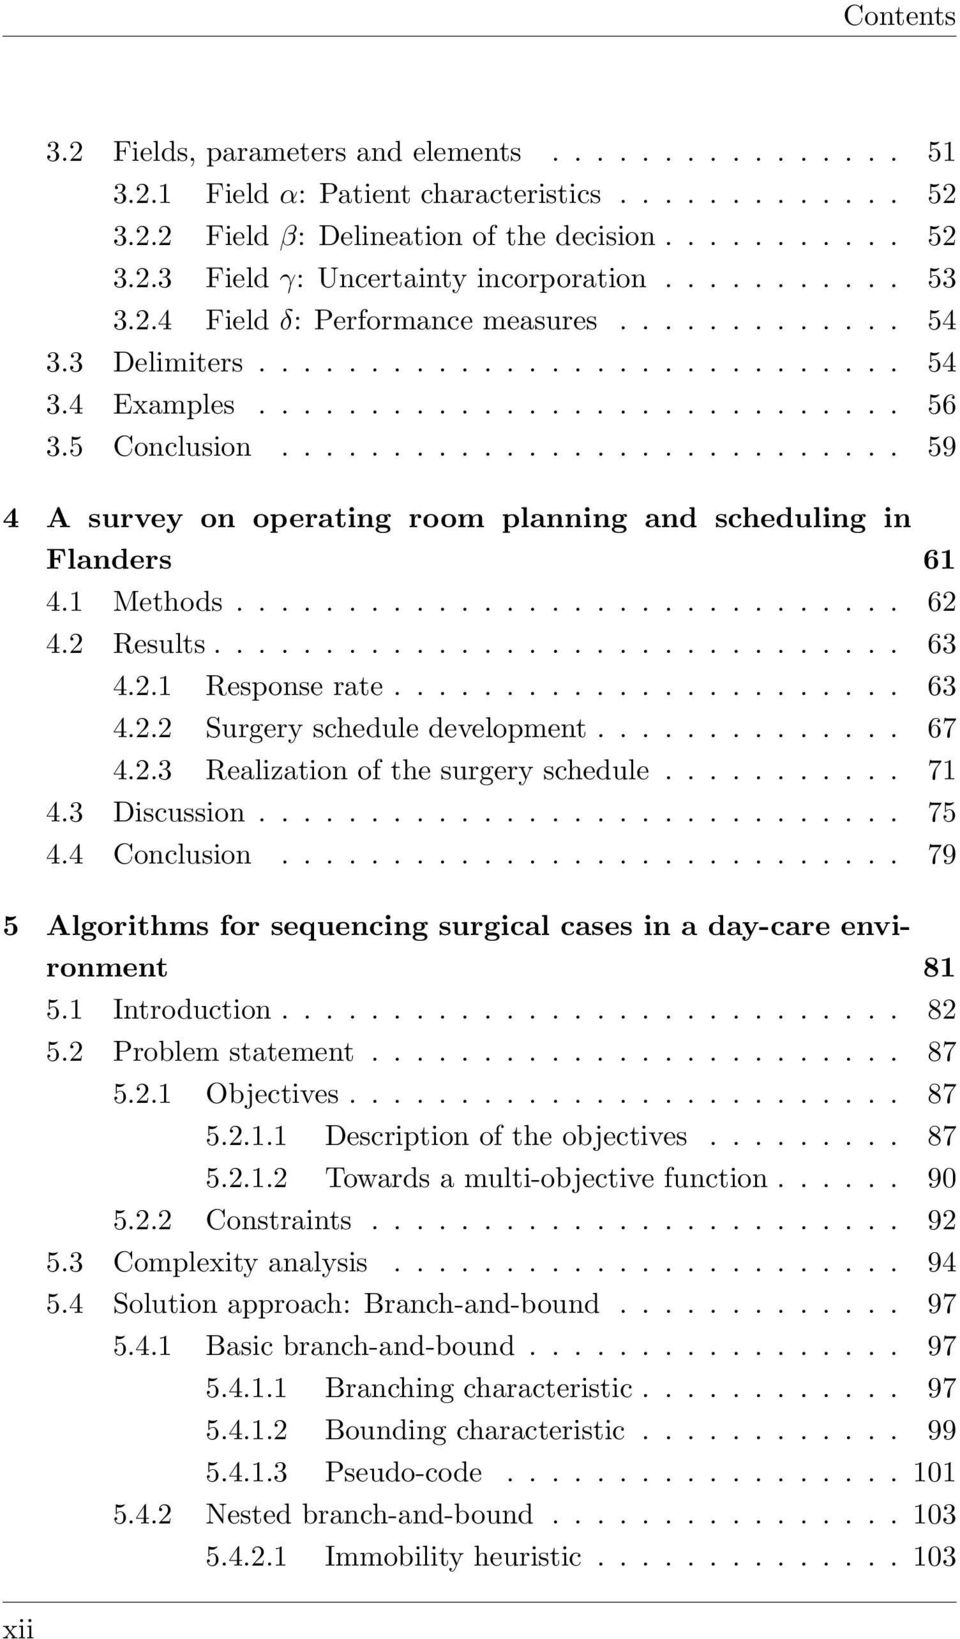 ........................... 59 4 A survey on operating room planning and scheduling in Flanders 61 4.1 Methods.............................. 62 4.2 Results............................... 63 4.2.1 Response rate.